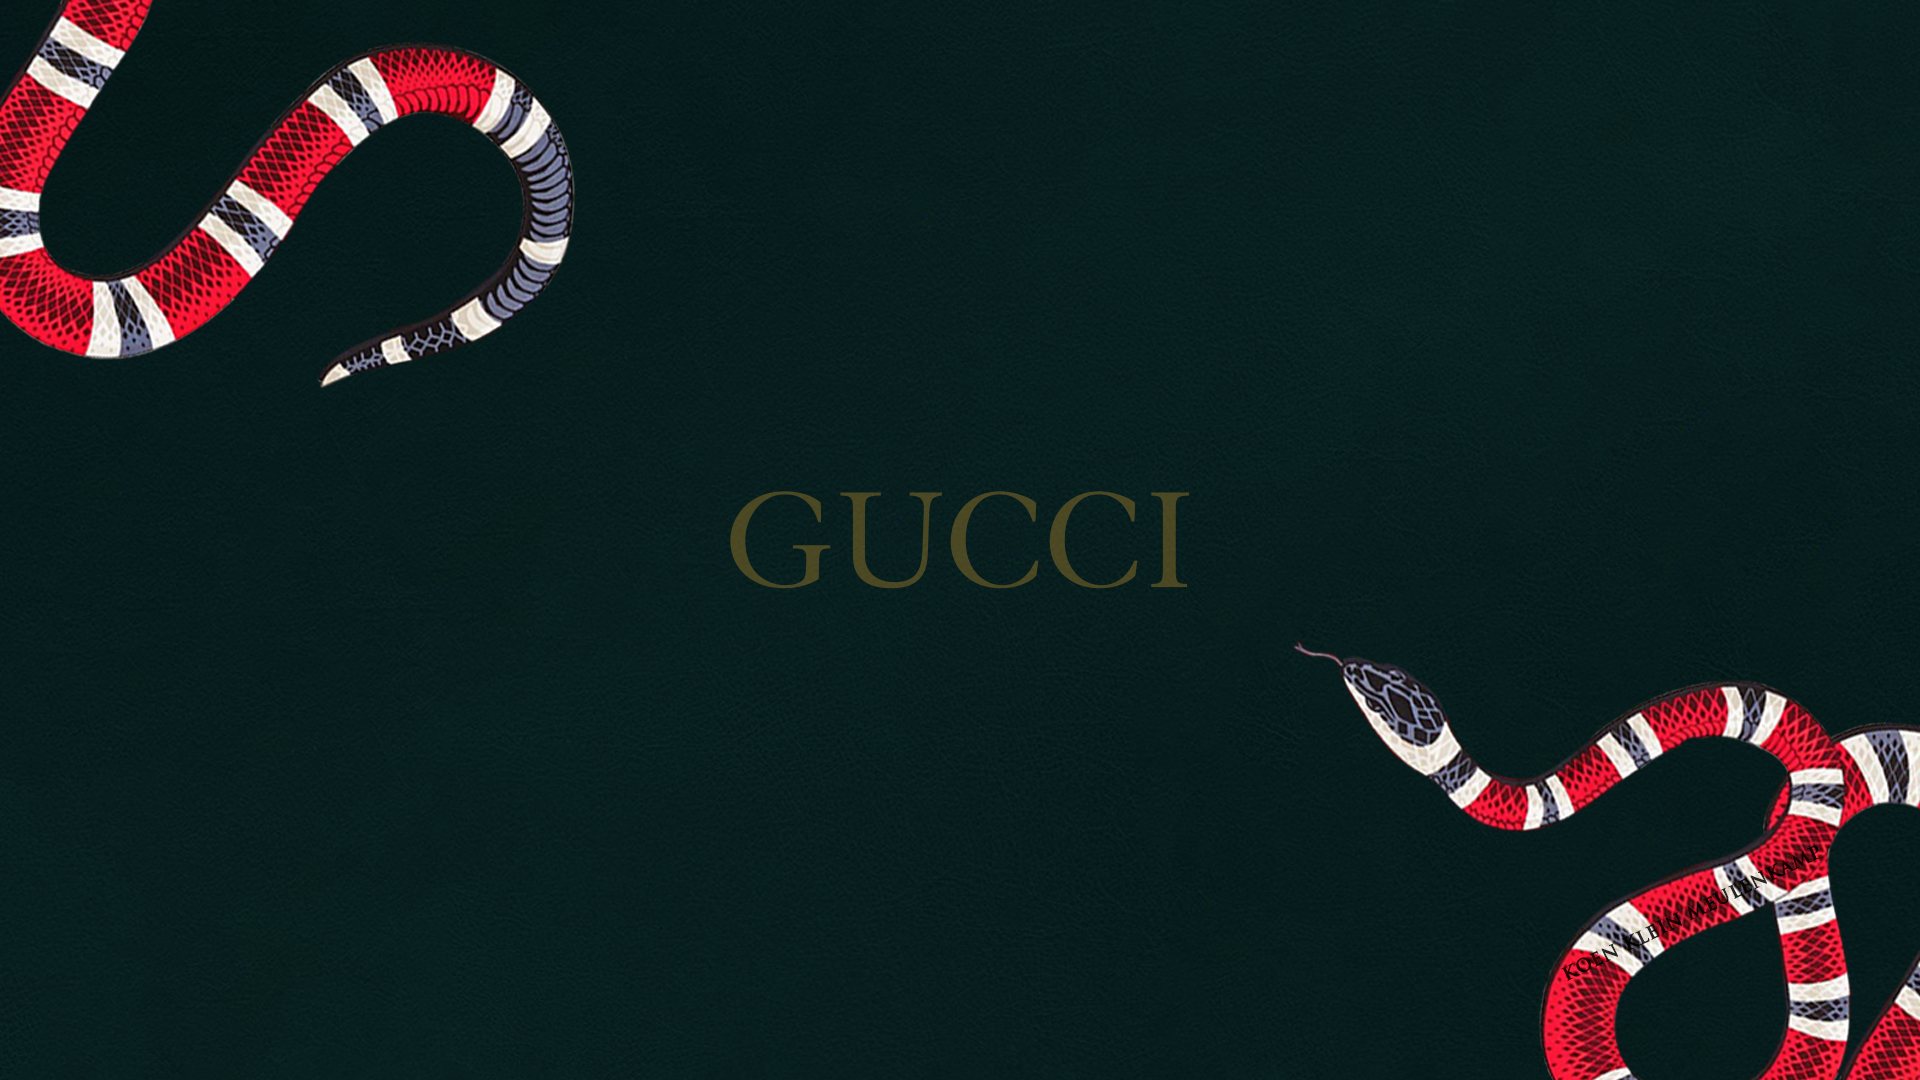 Gucci Logo Desktop Pictures to Pin   PinsDaddy 1920x1080